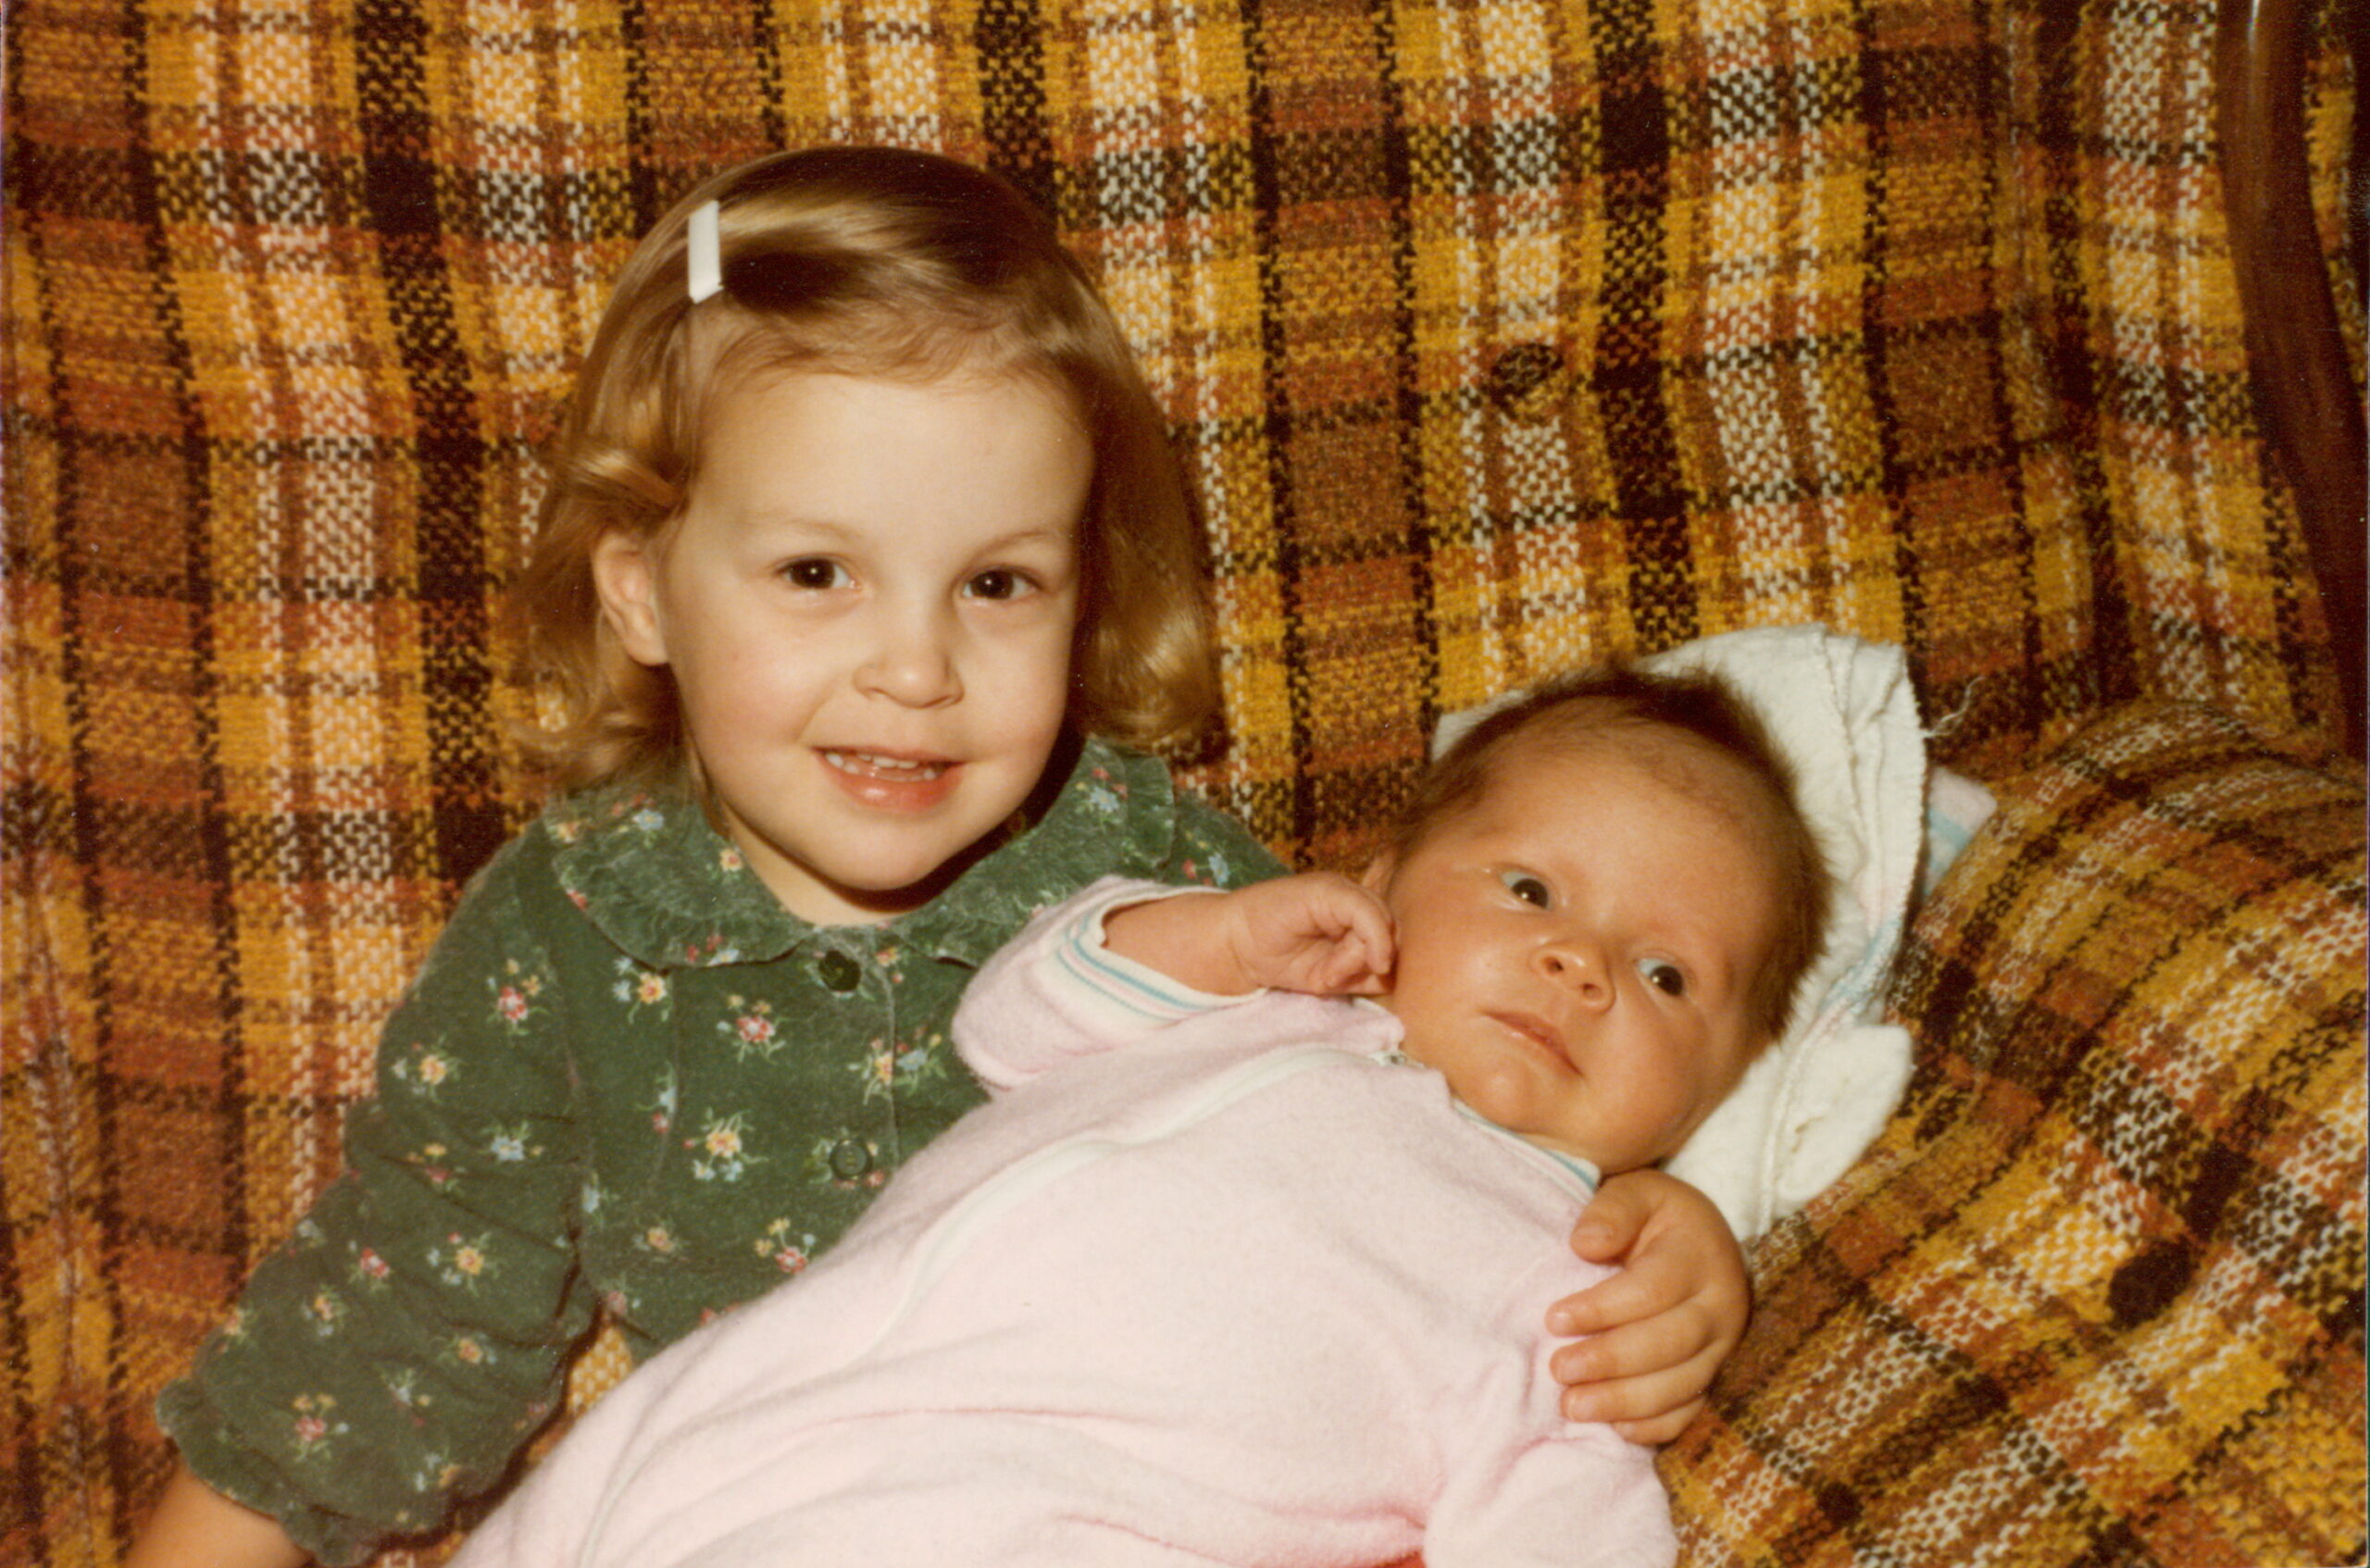 Kristen and her baby sister